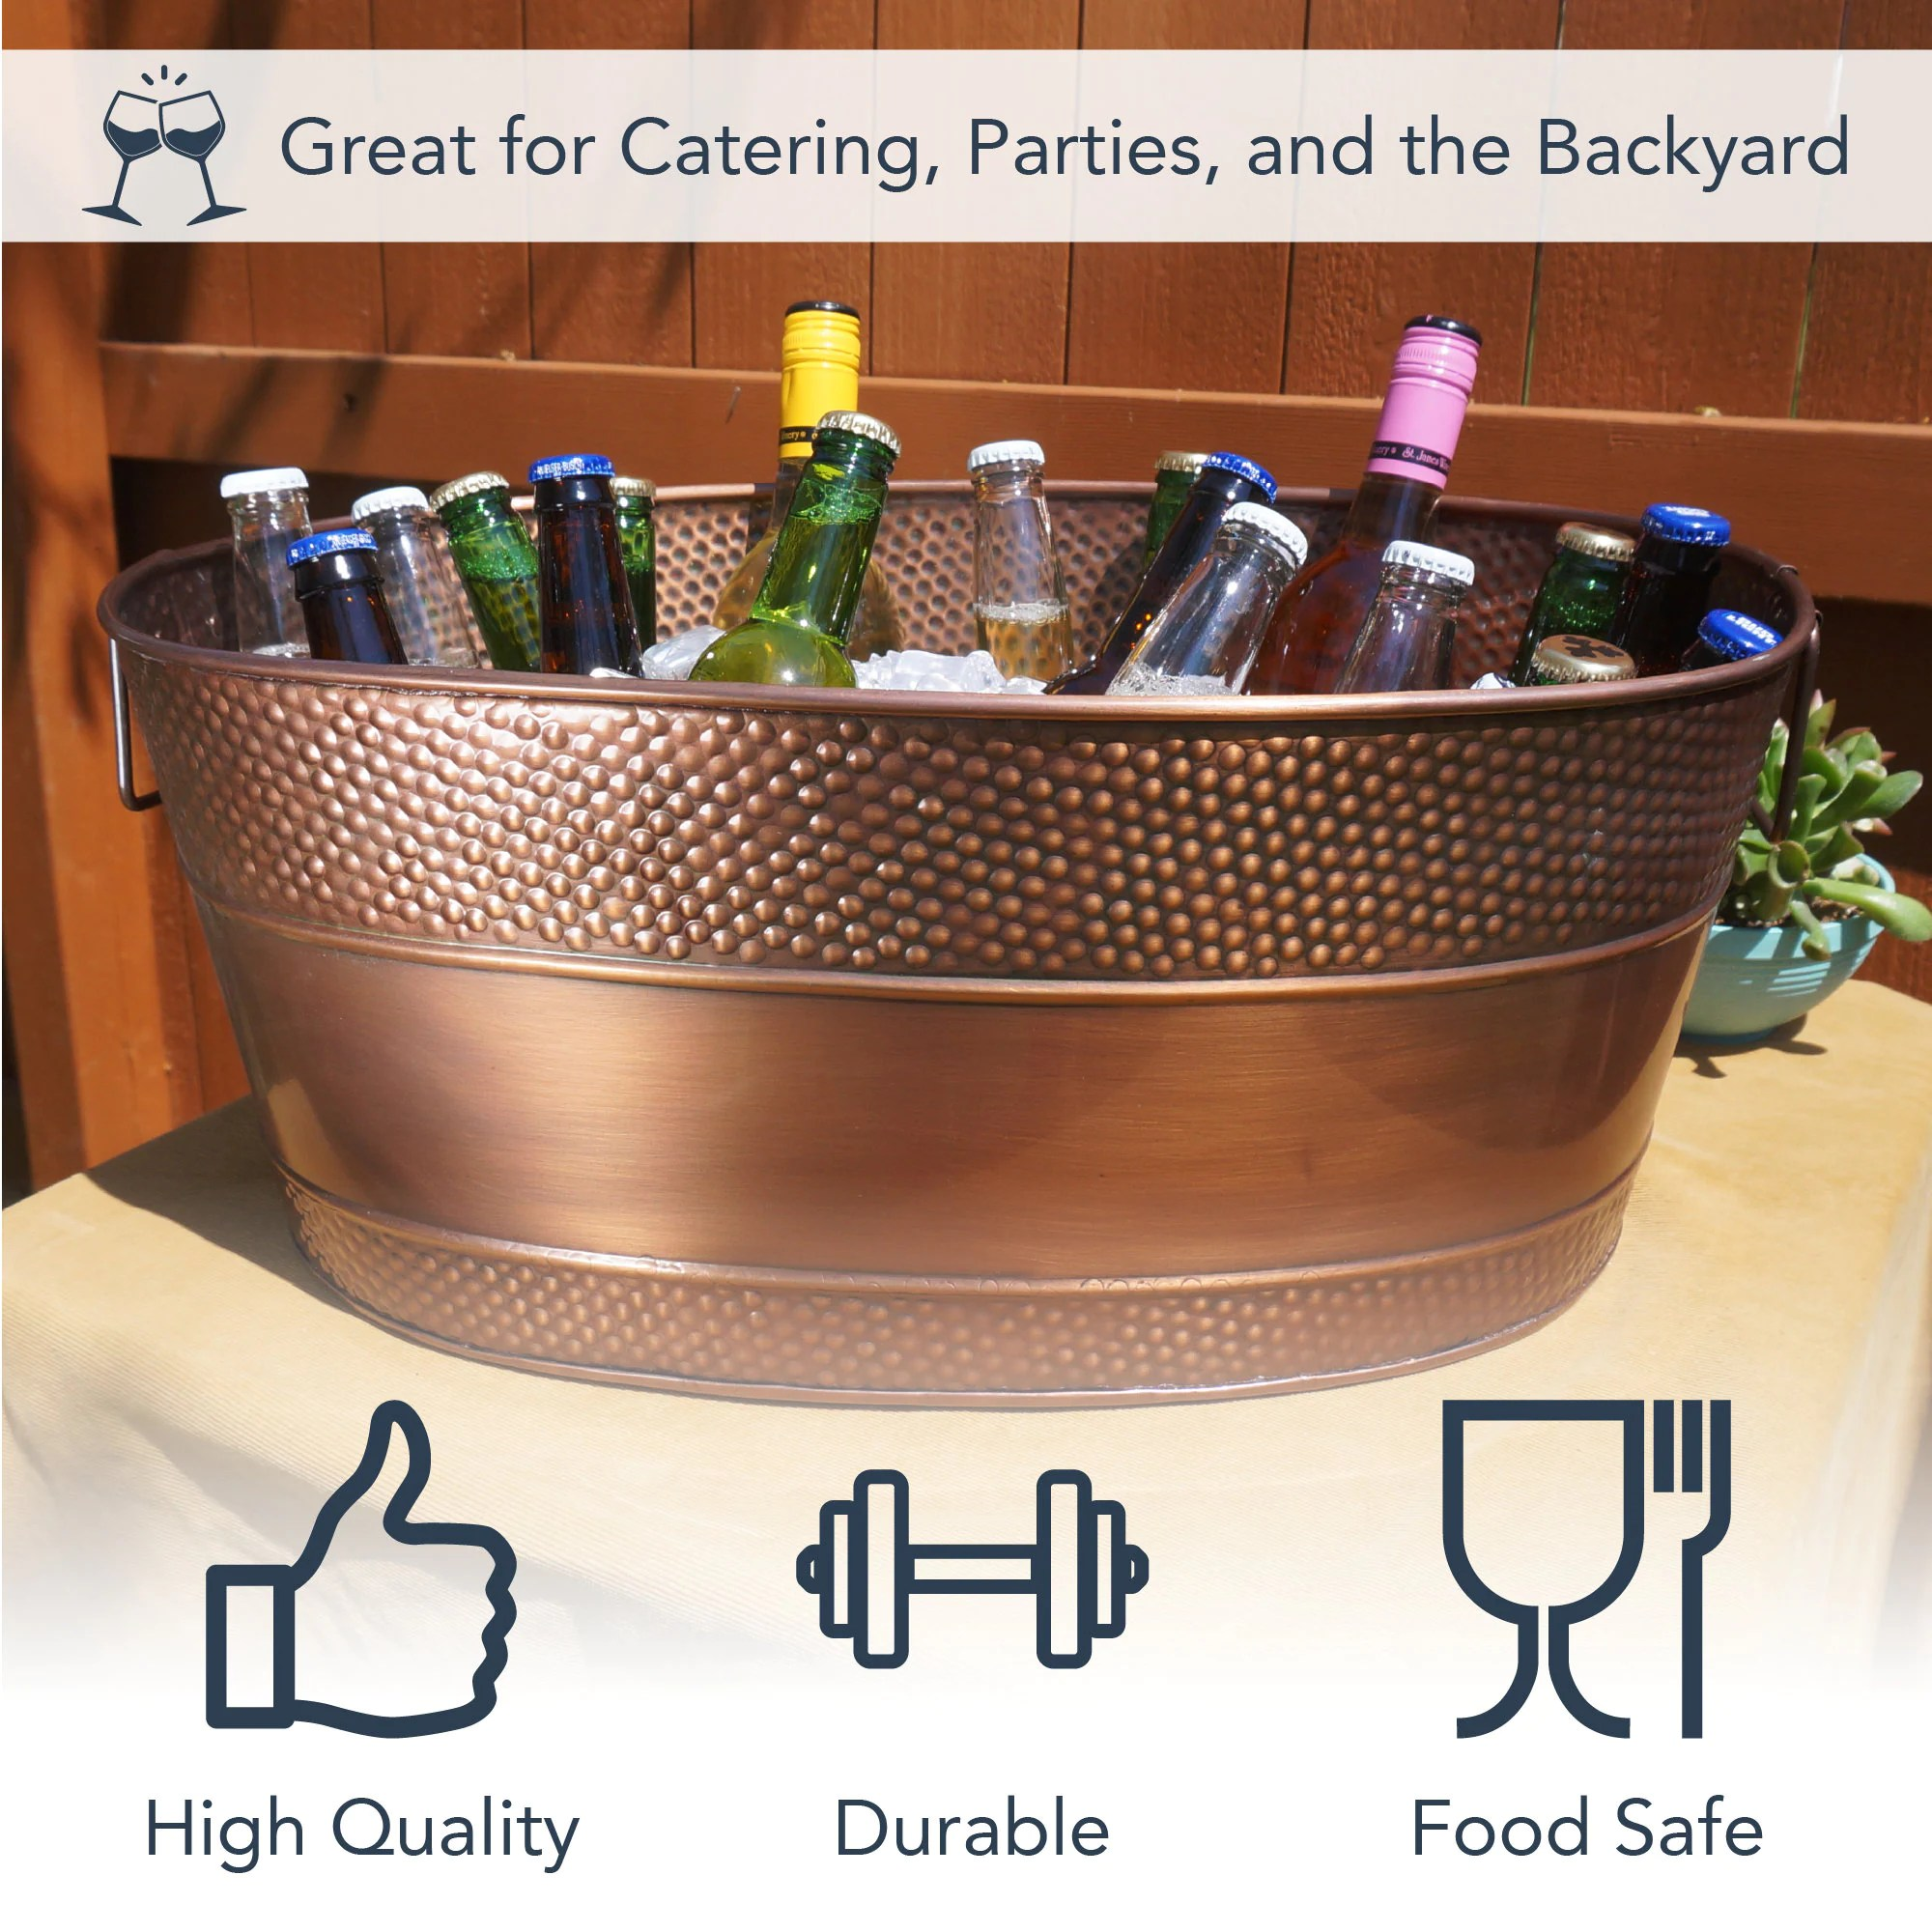 Personalized Copper Beverage Tub & Wine Chiller Ice Bucket image 6